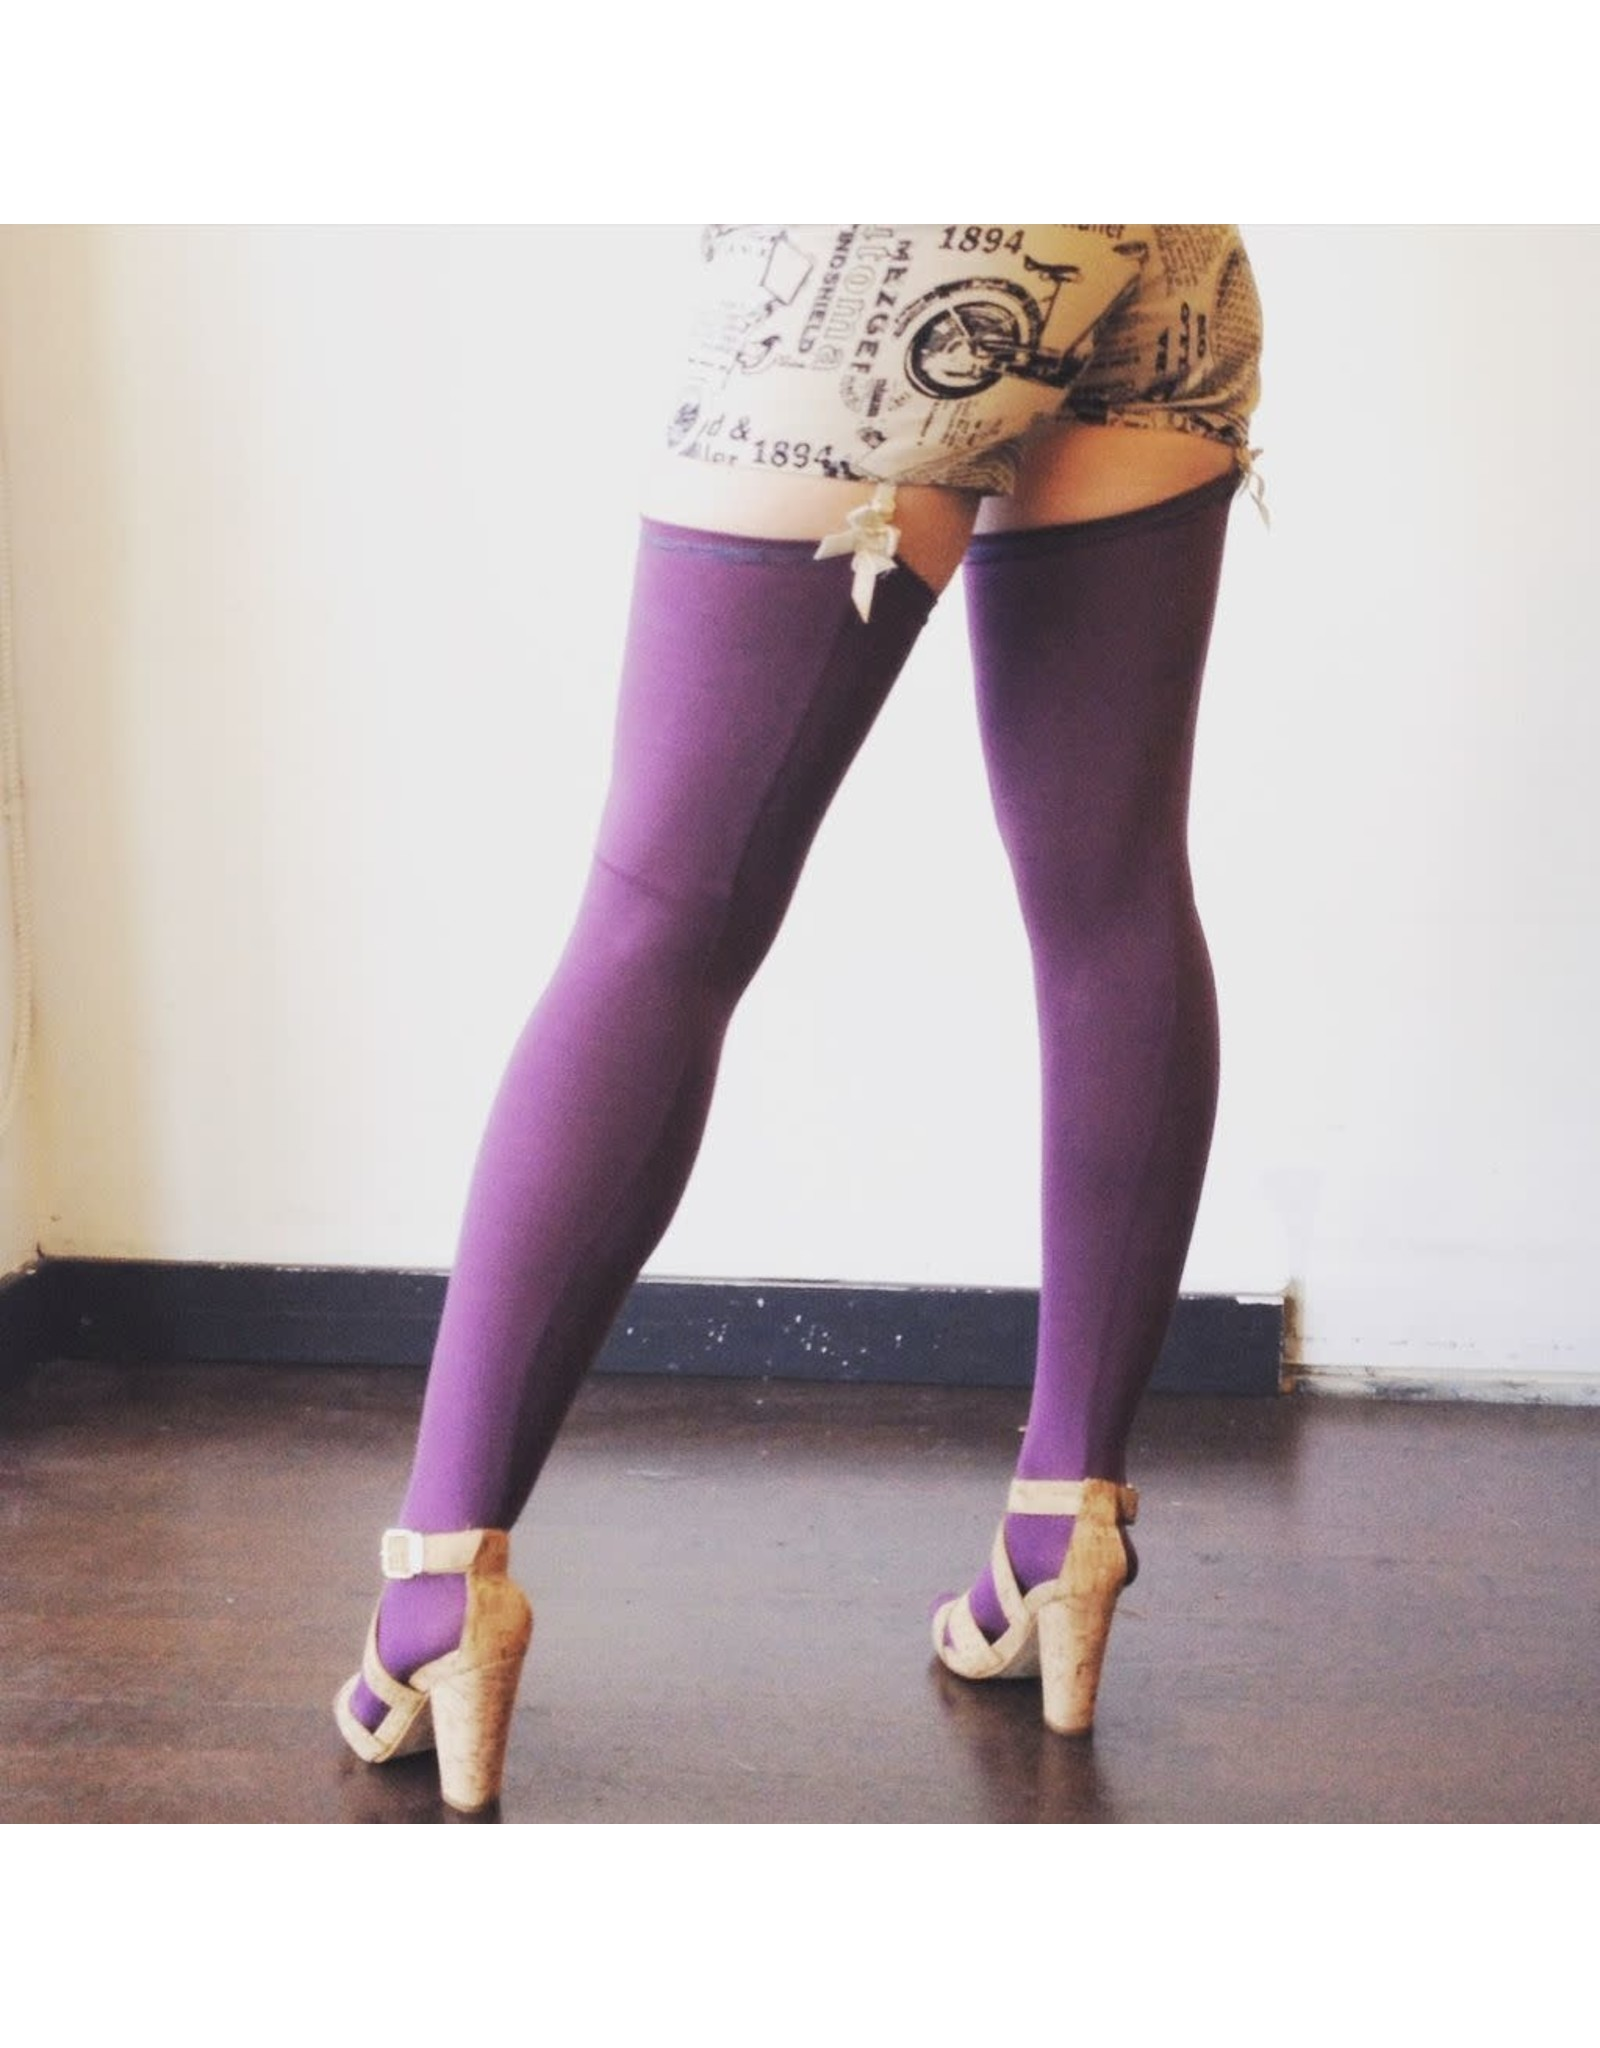 Devil May Wear Thigh High Bamboo Stockings. Seam Up the Back and in Toe. 95% Viscose from Bamboo, 5% Spandex. Must Use Garters. Flint